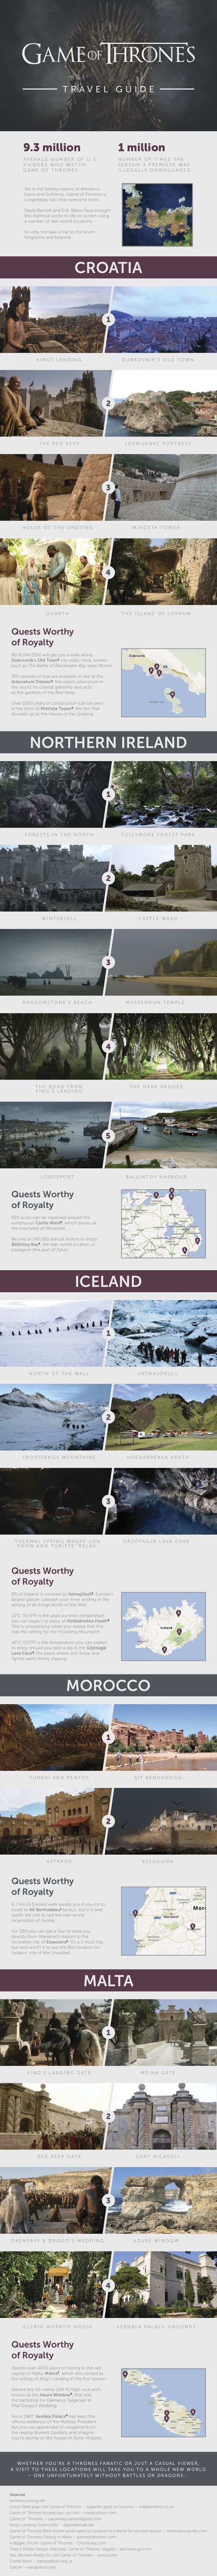 Game of Thrones travel guide - Another good reason to travel to Ireland... It's freakin' Winterfell!!!